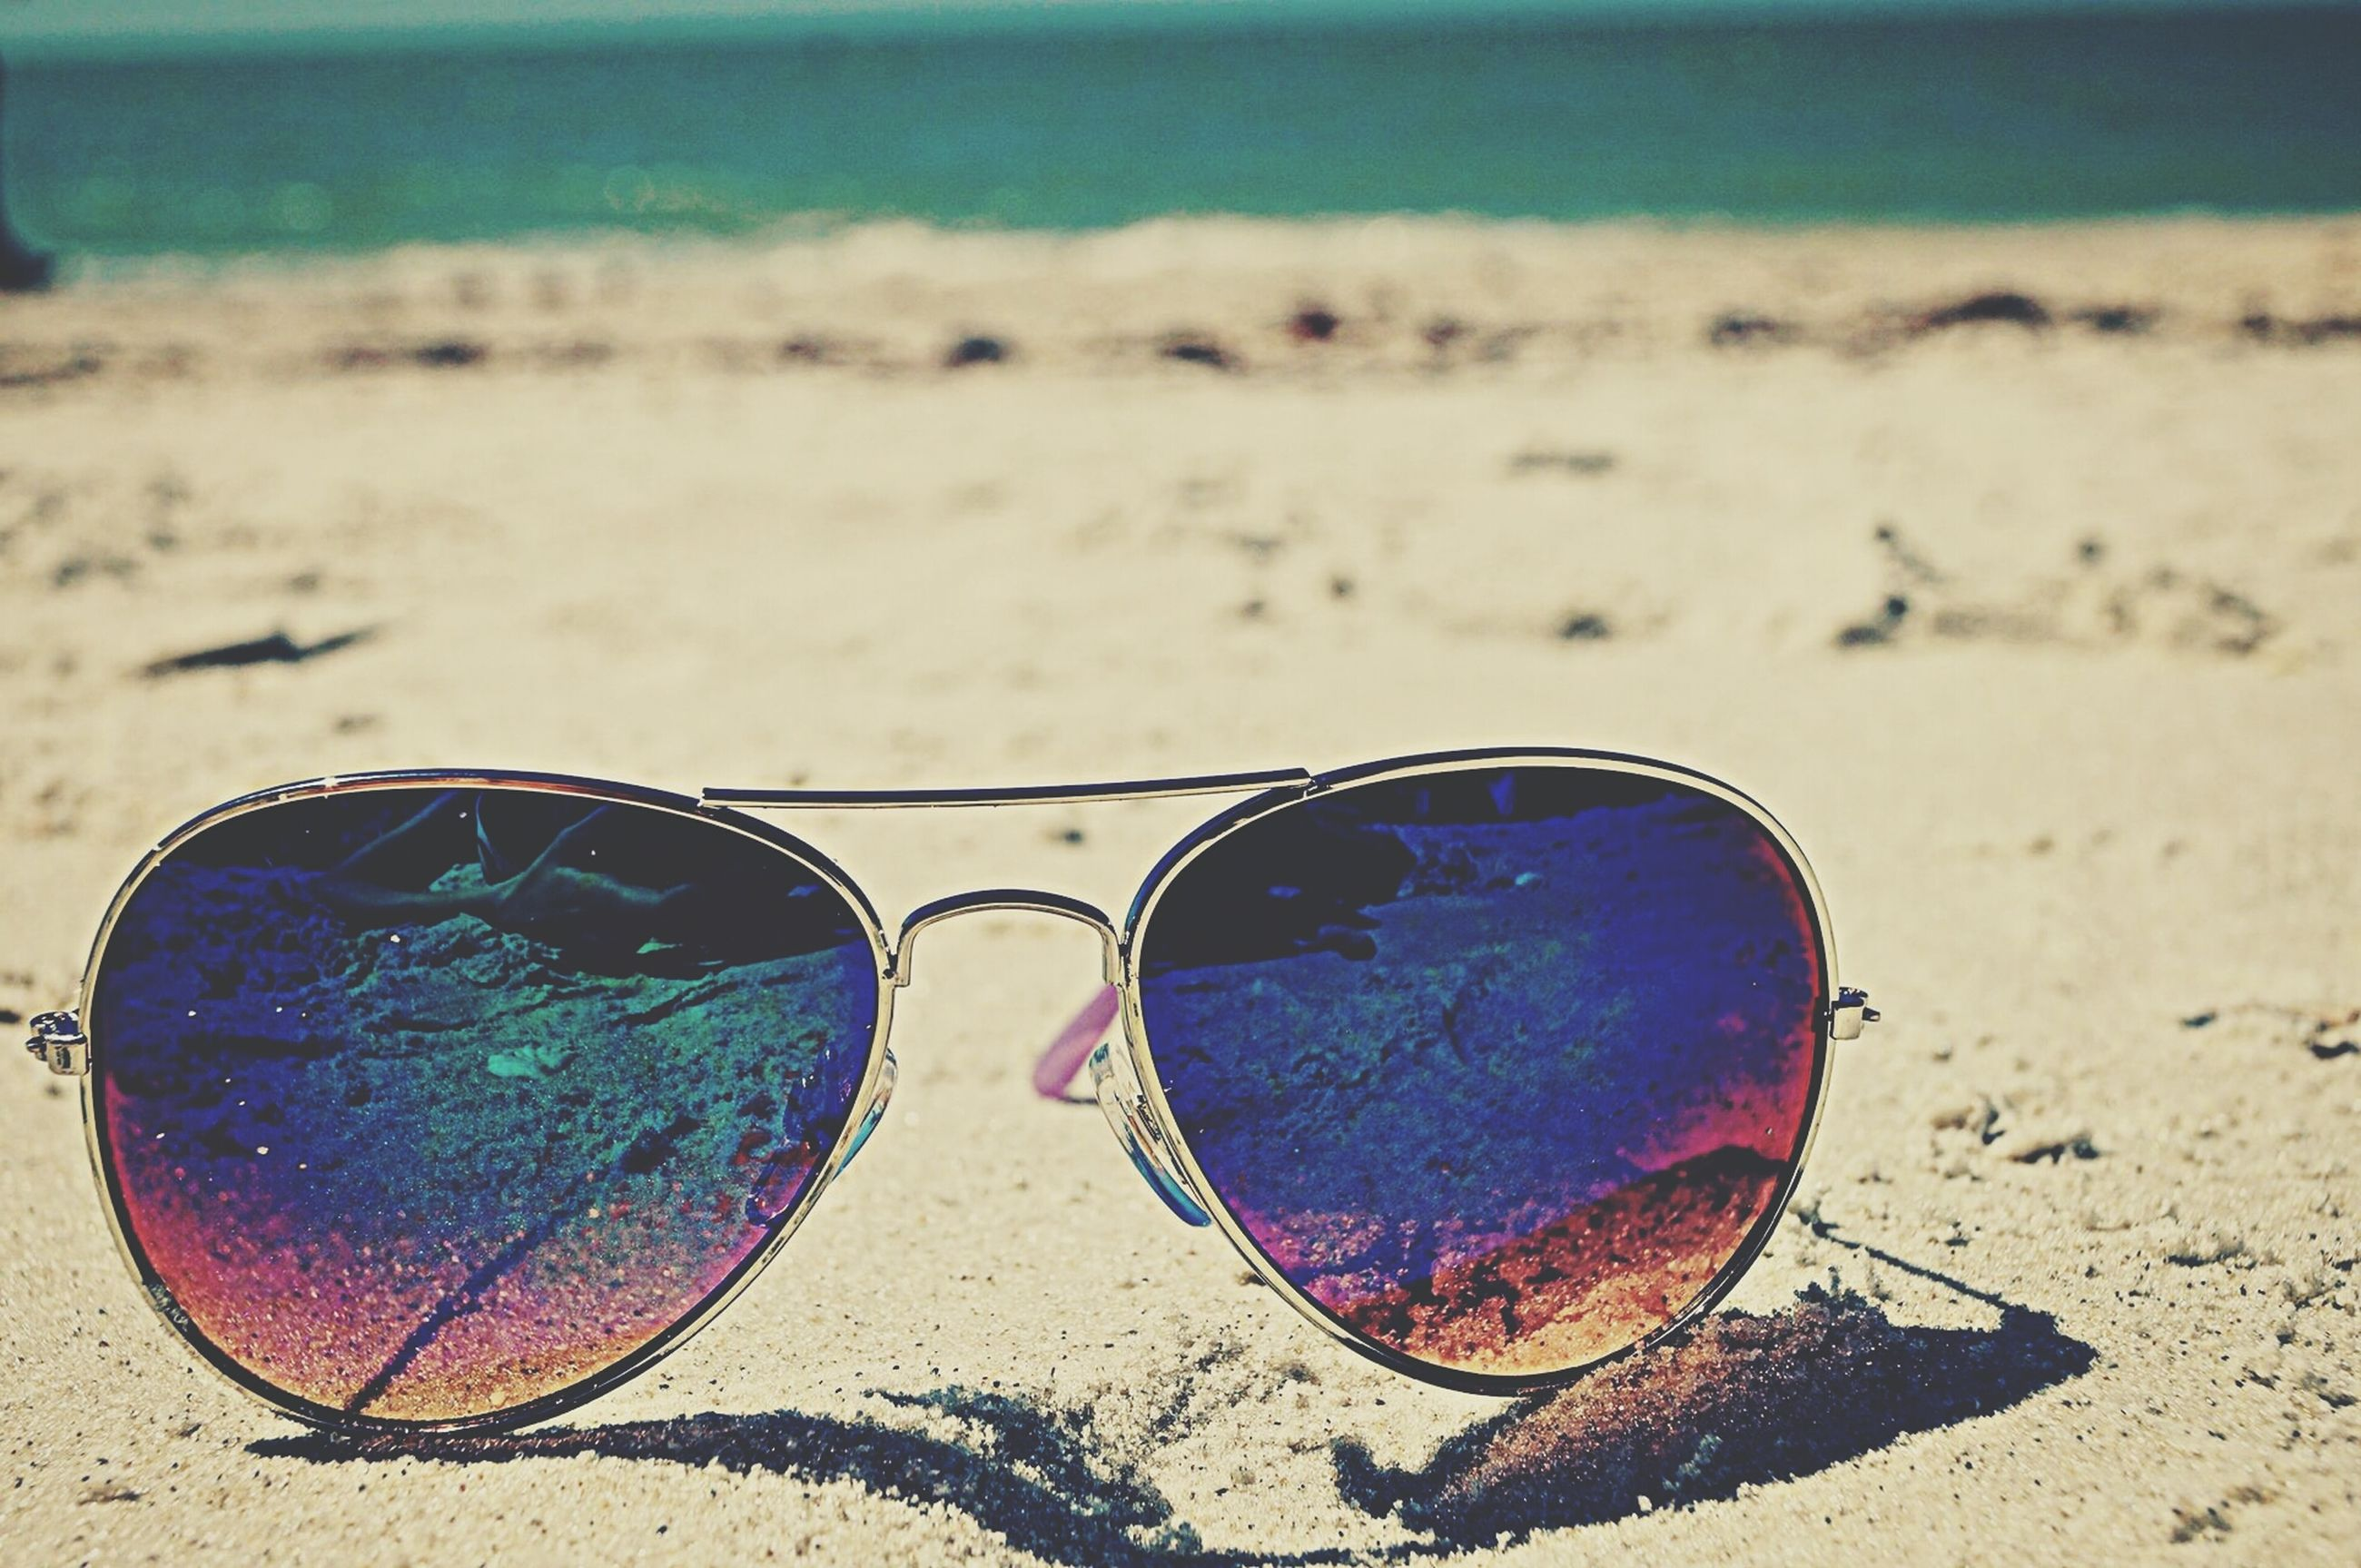 beach, sand, shore, sunglasses, focus on foreground, close-up, day, outdoors, circle, sky, tranquility, nature, sea, sunlight, no people, field, blue, water, transportation, landscape